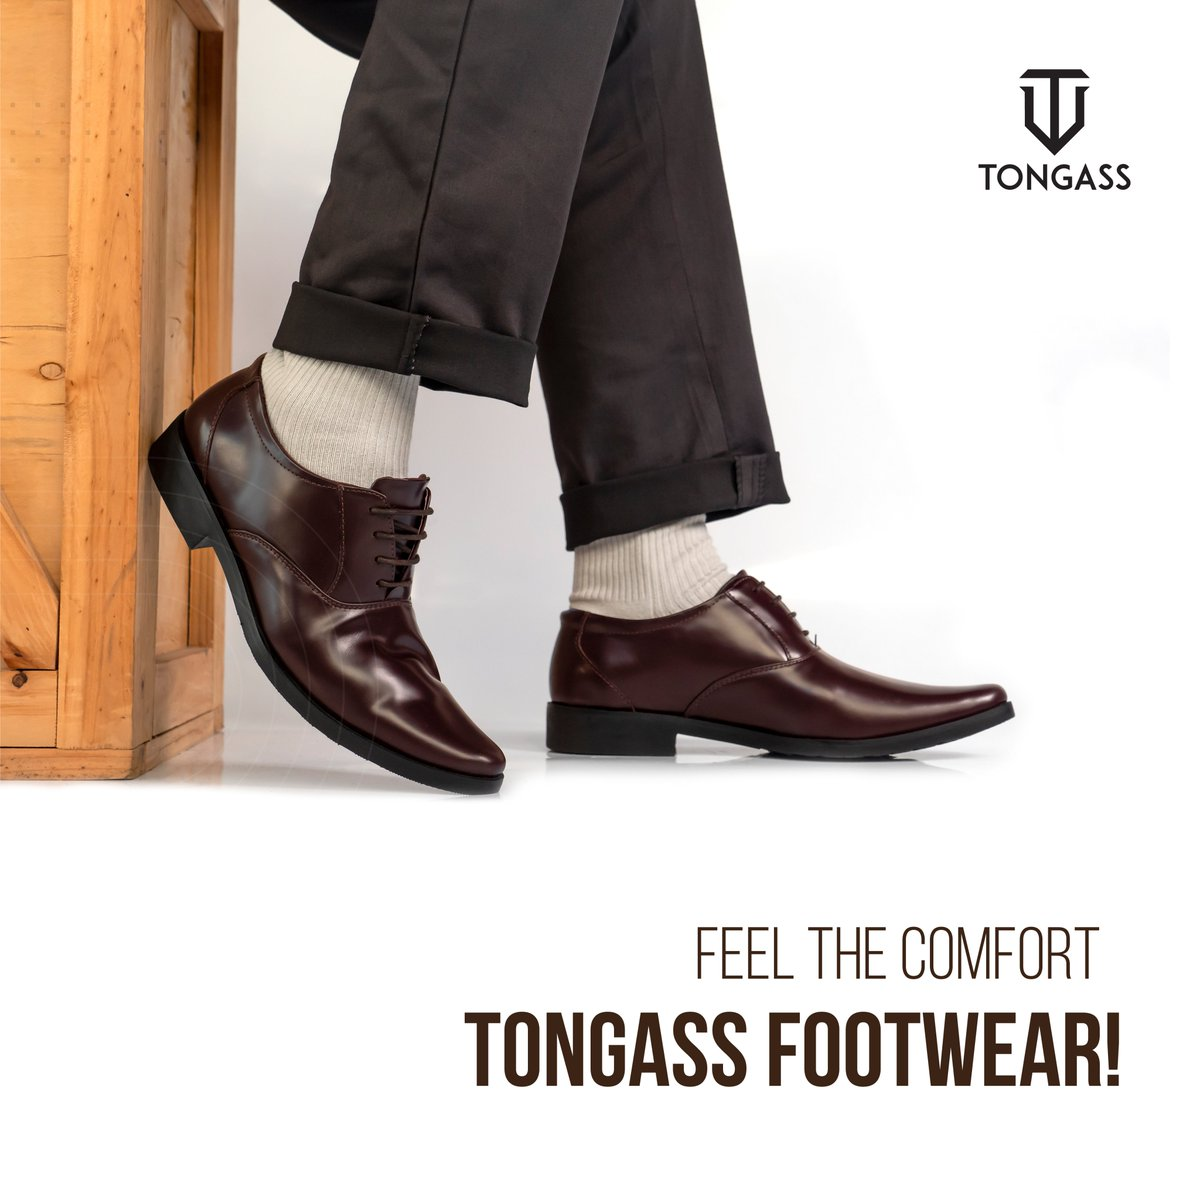 Feel The Comfort! - Tongass Footwear   Follow us to know more  @tongass.official   #Tongass #lifestyle #footwear  #footweardesign #featuredfootwear #menwithfootwear #footwears #womensfootwear #luxuryfootwear #kidsfootwear #footwearfashion #lacrossefootwear #indian #beautypic.twitter.com/BmkV31Ey1b